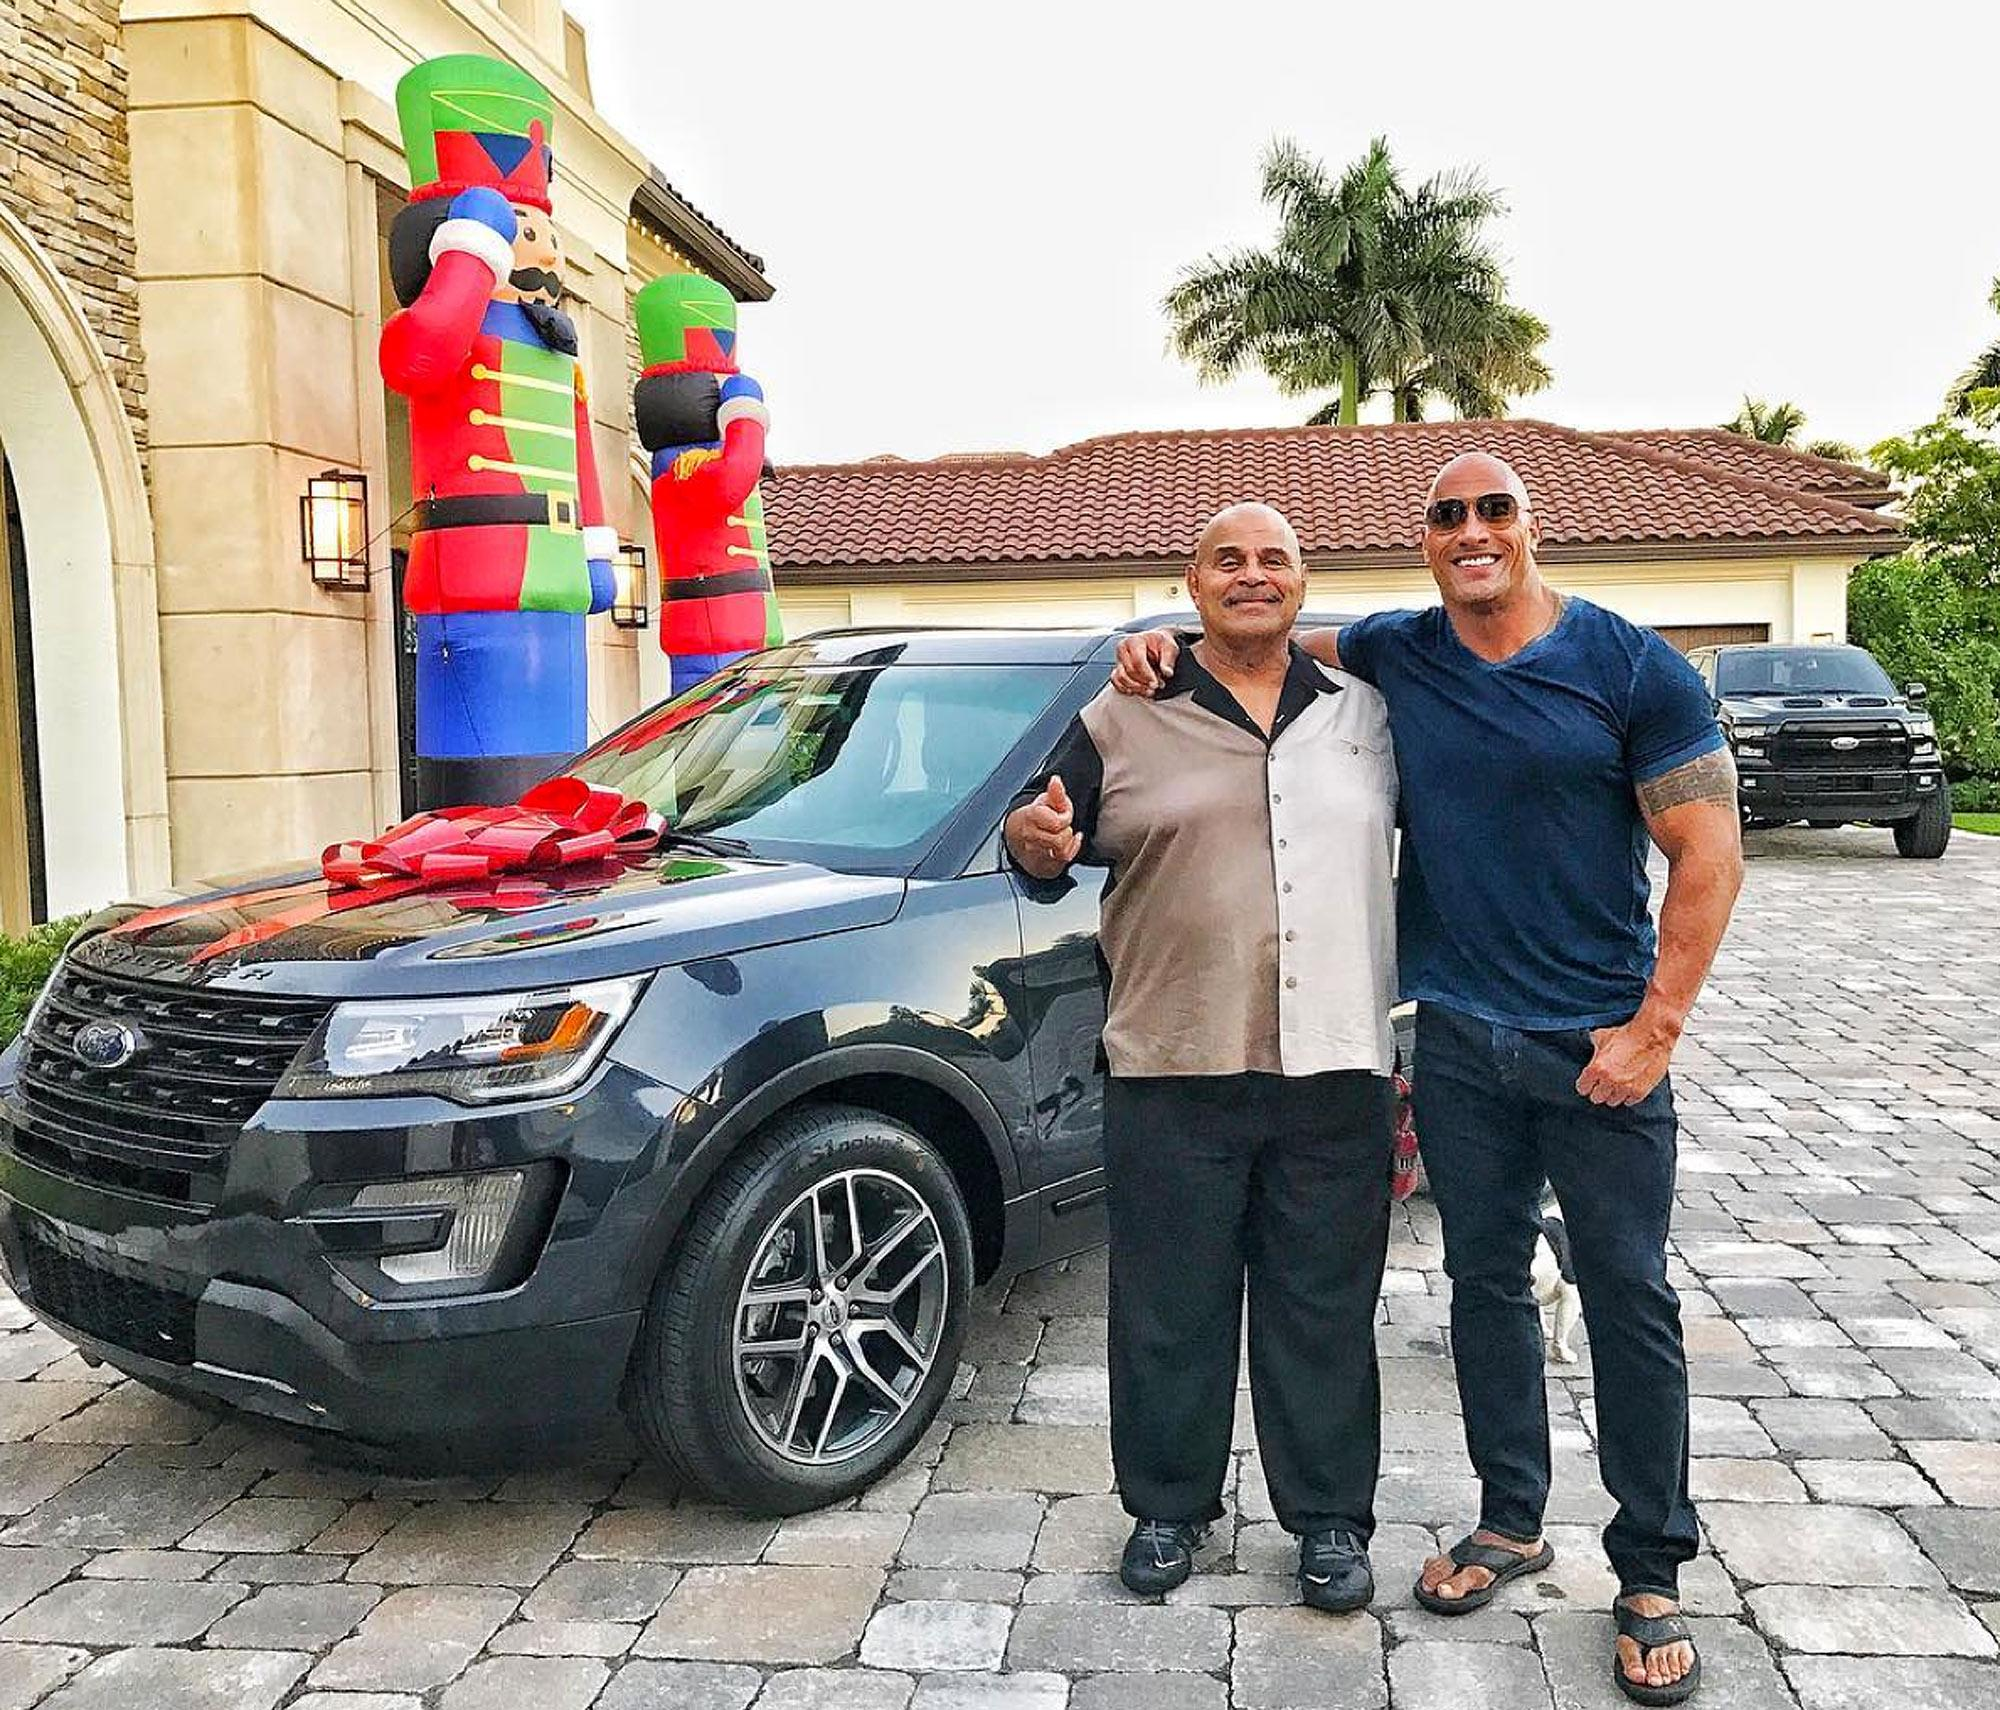 Dwayne 'The Rock' Johnson Buys His Dad a Car for Christmas and Tells Amazing Story About His Rough Childhood